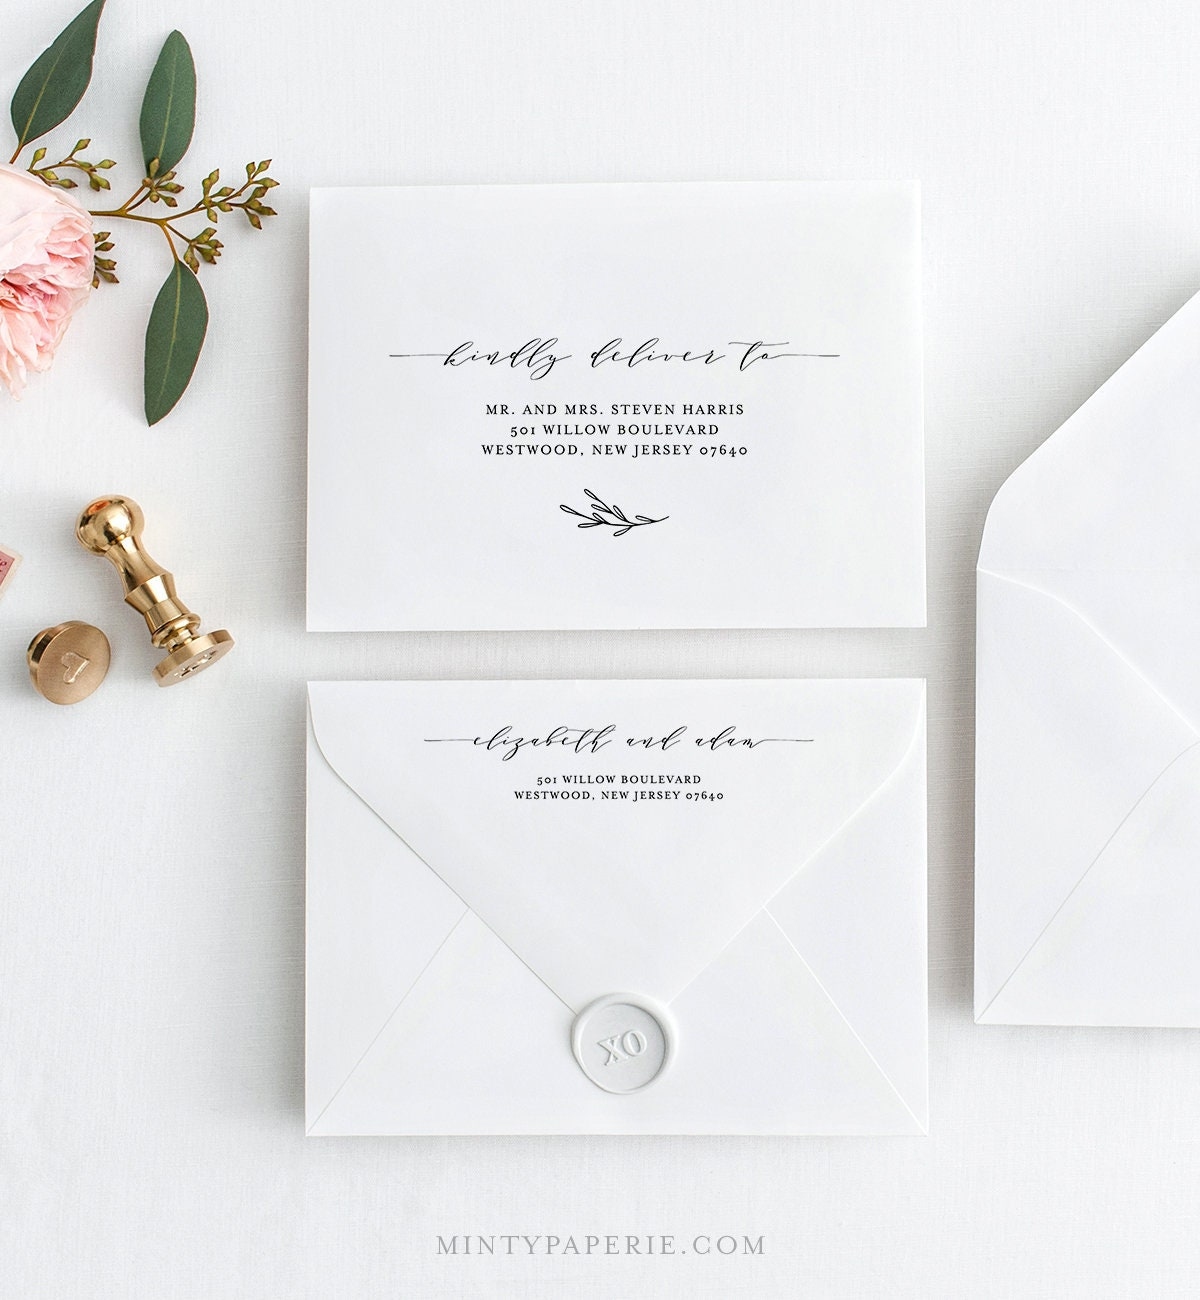 Envelope Address Template, Printable Wedding Envelope